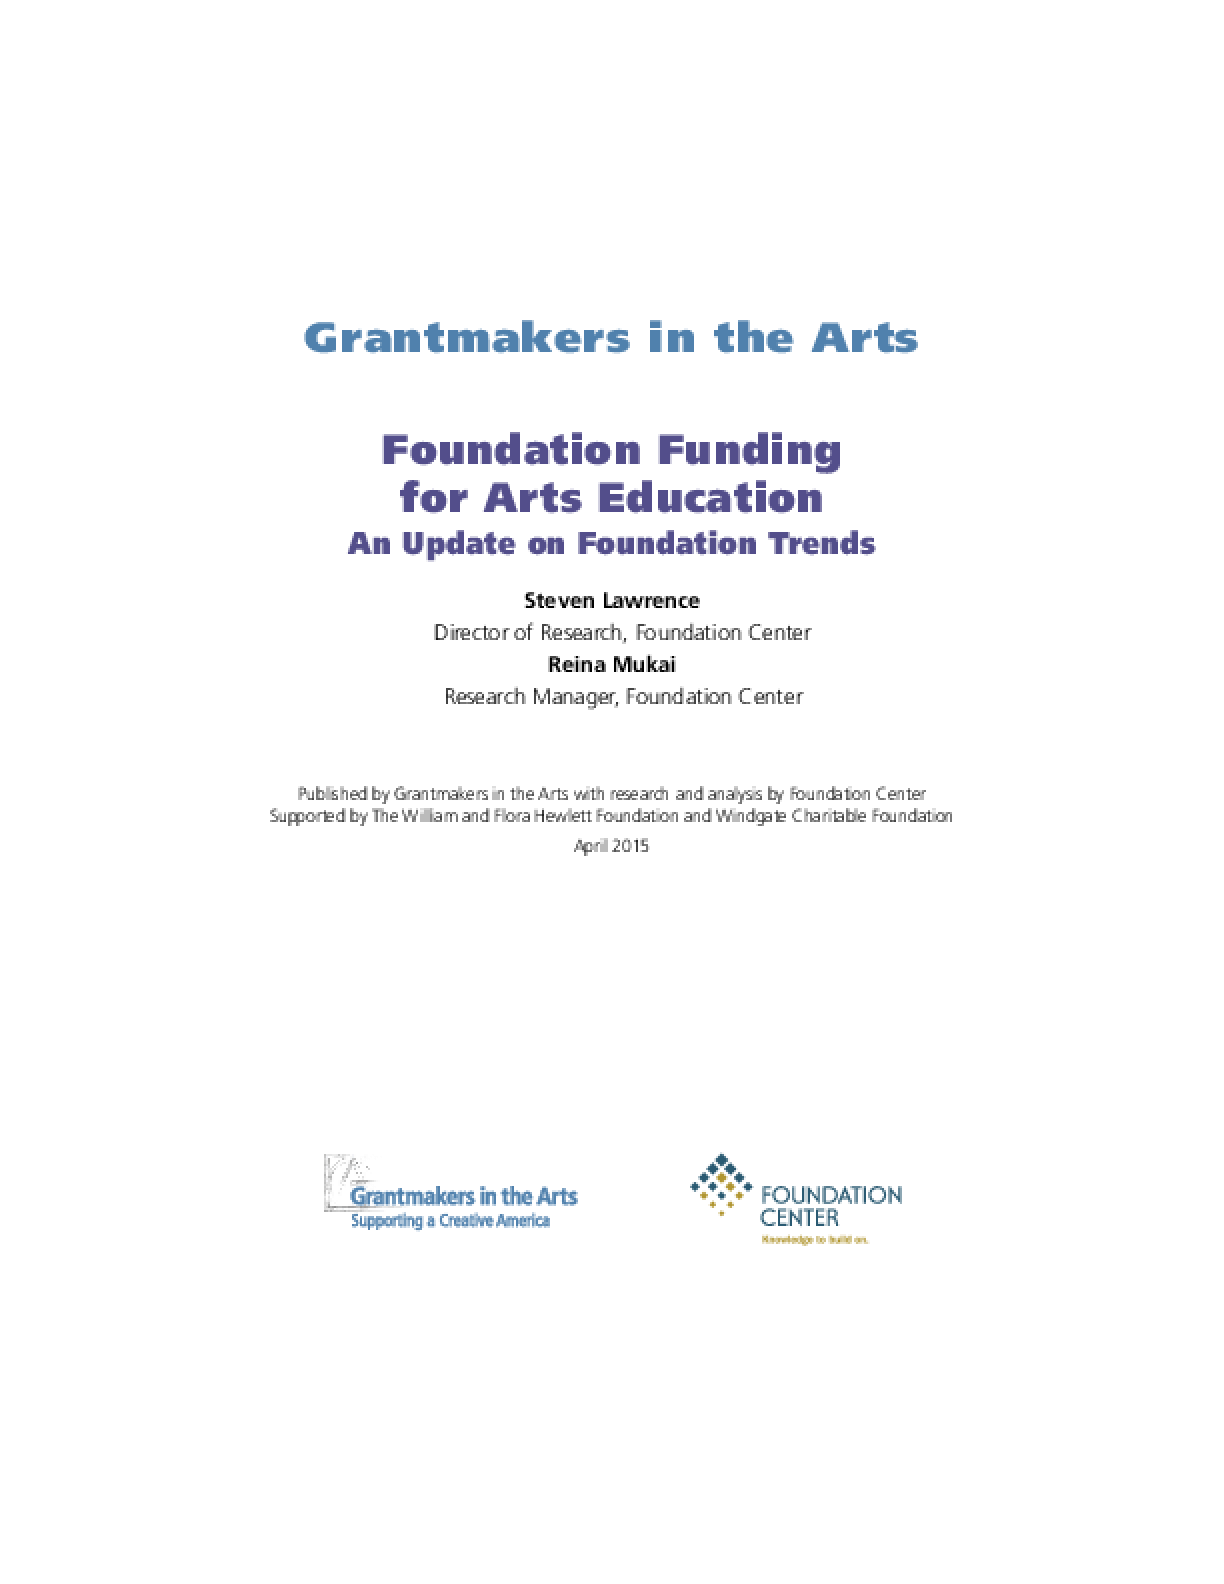 Foundation Funding for Arts Education: An Update on Foundation Trends